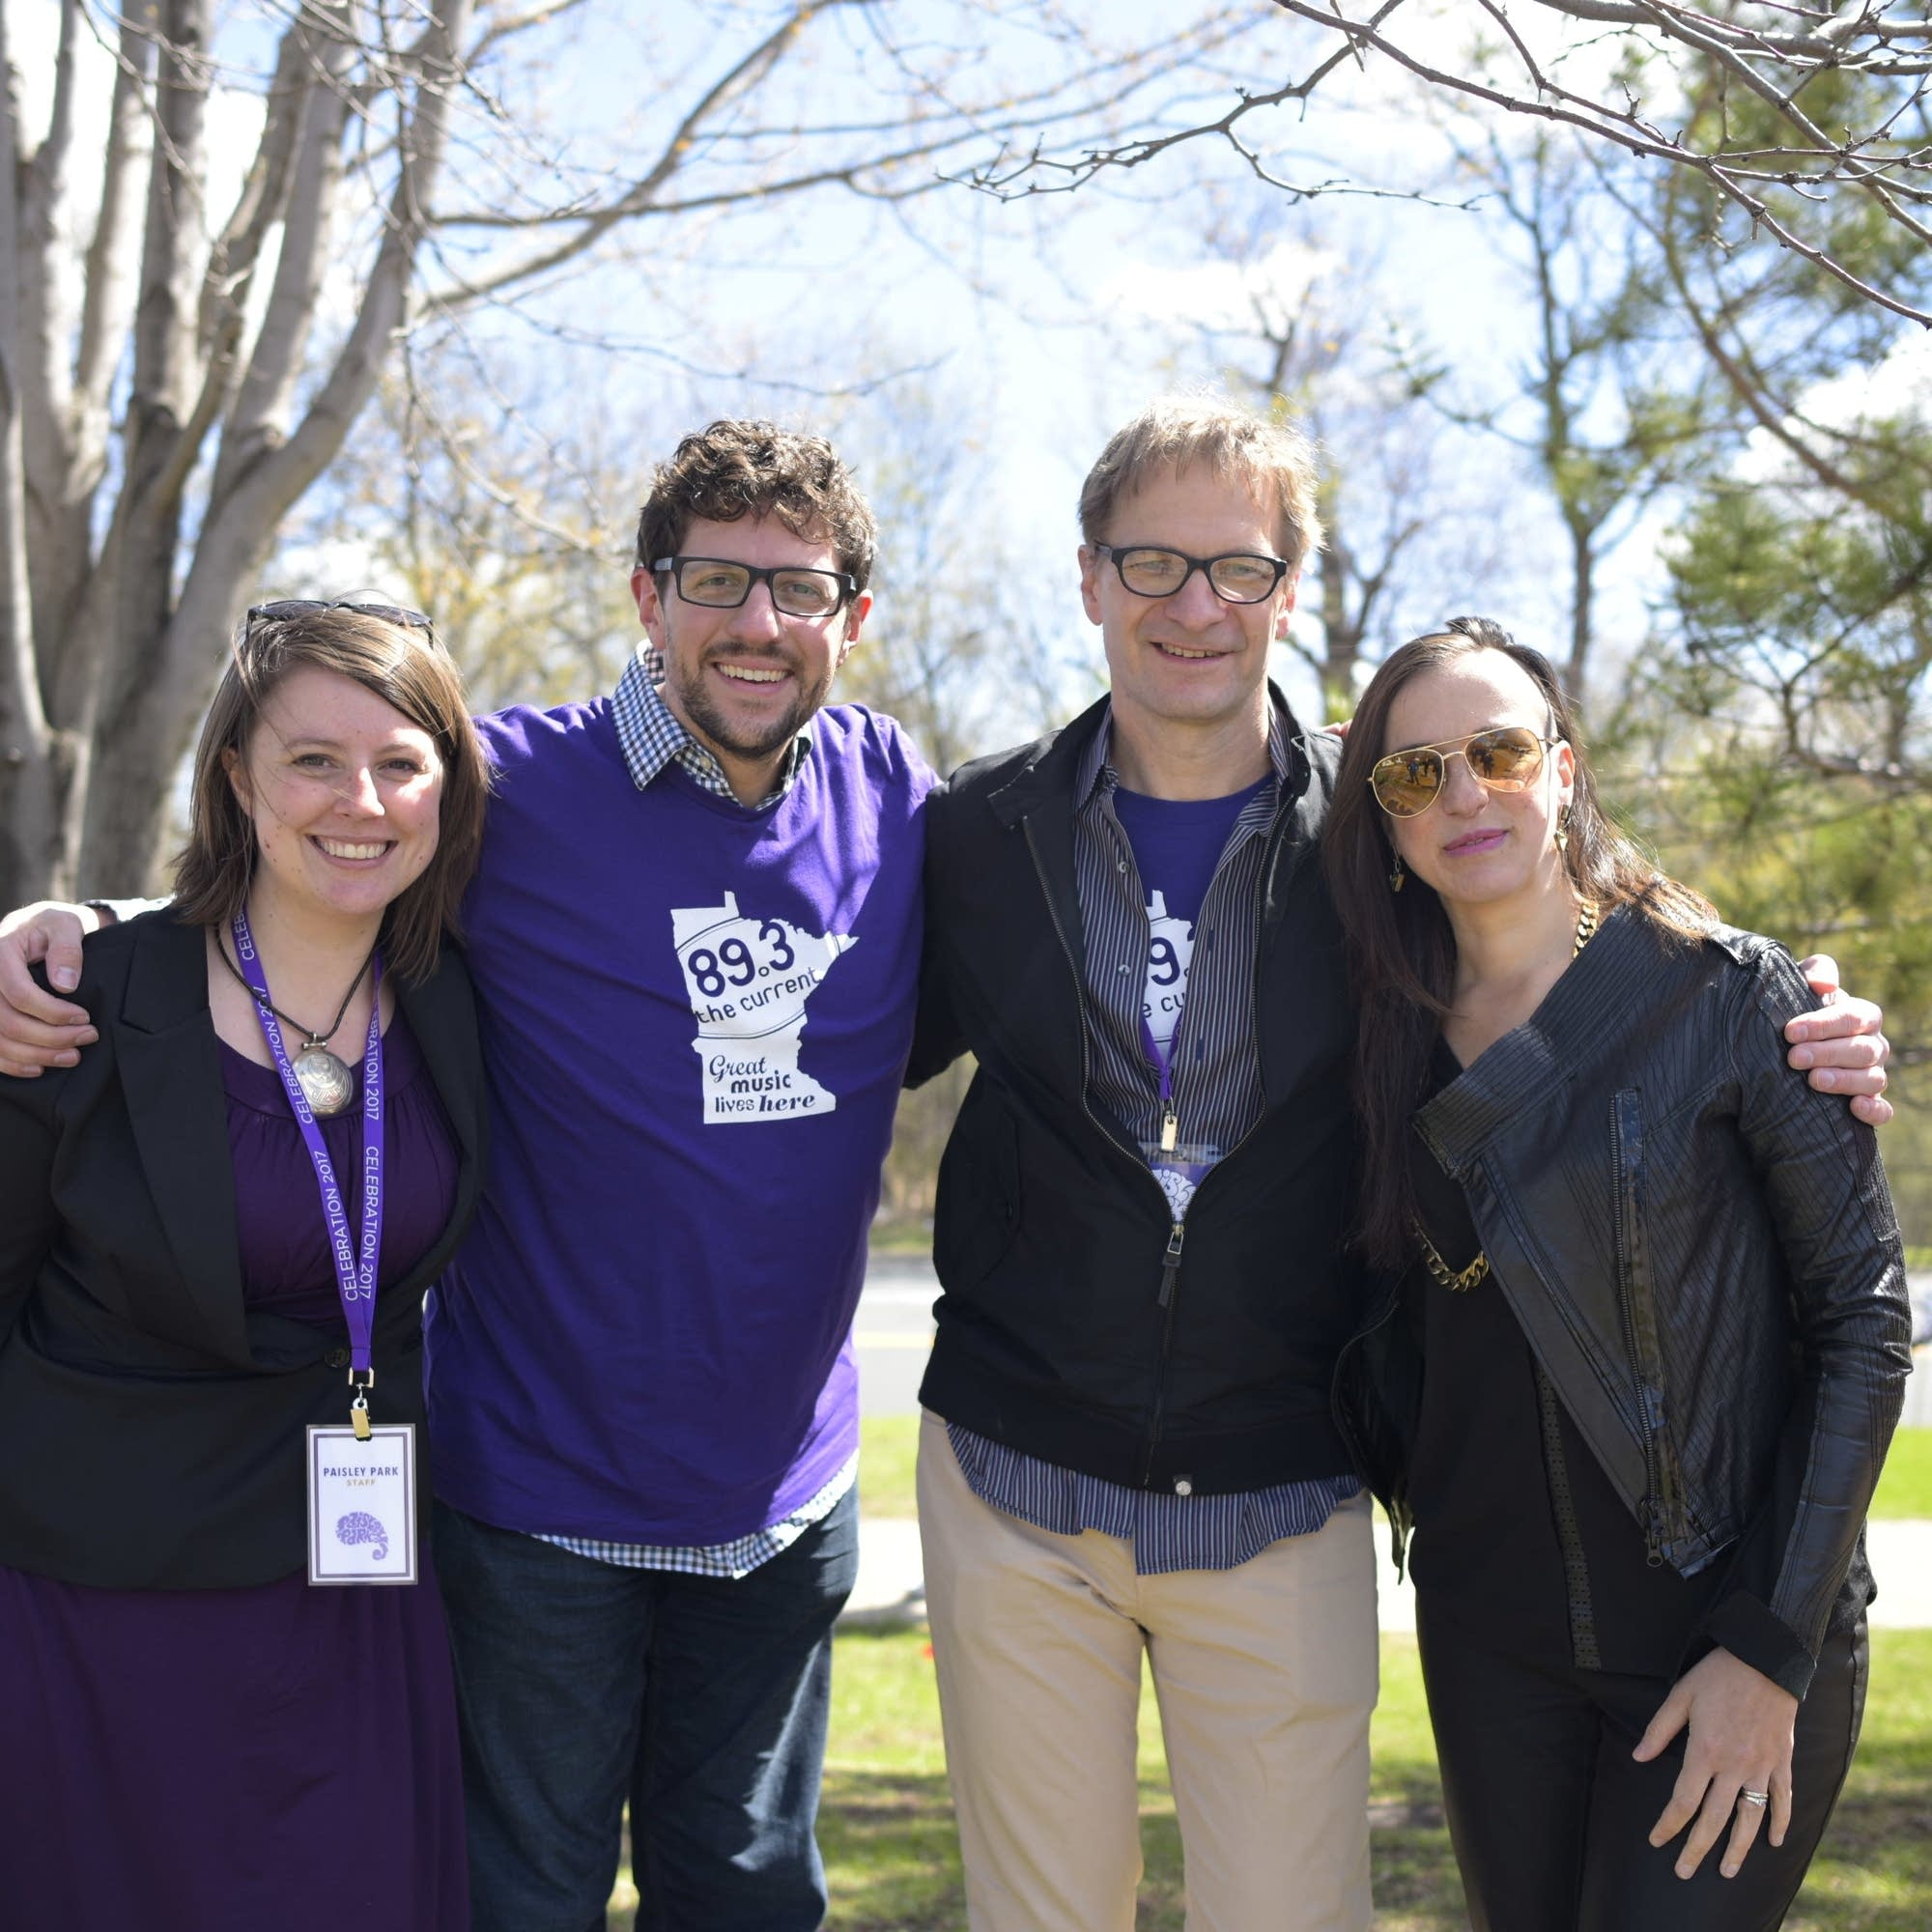 MPR at Paisley Park on April 21, 2017